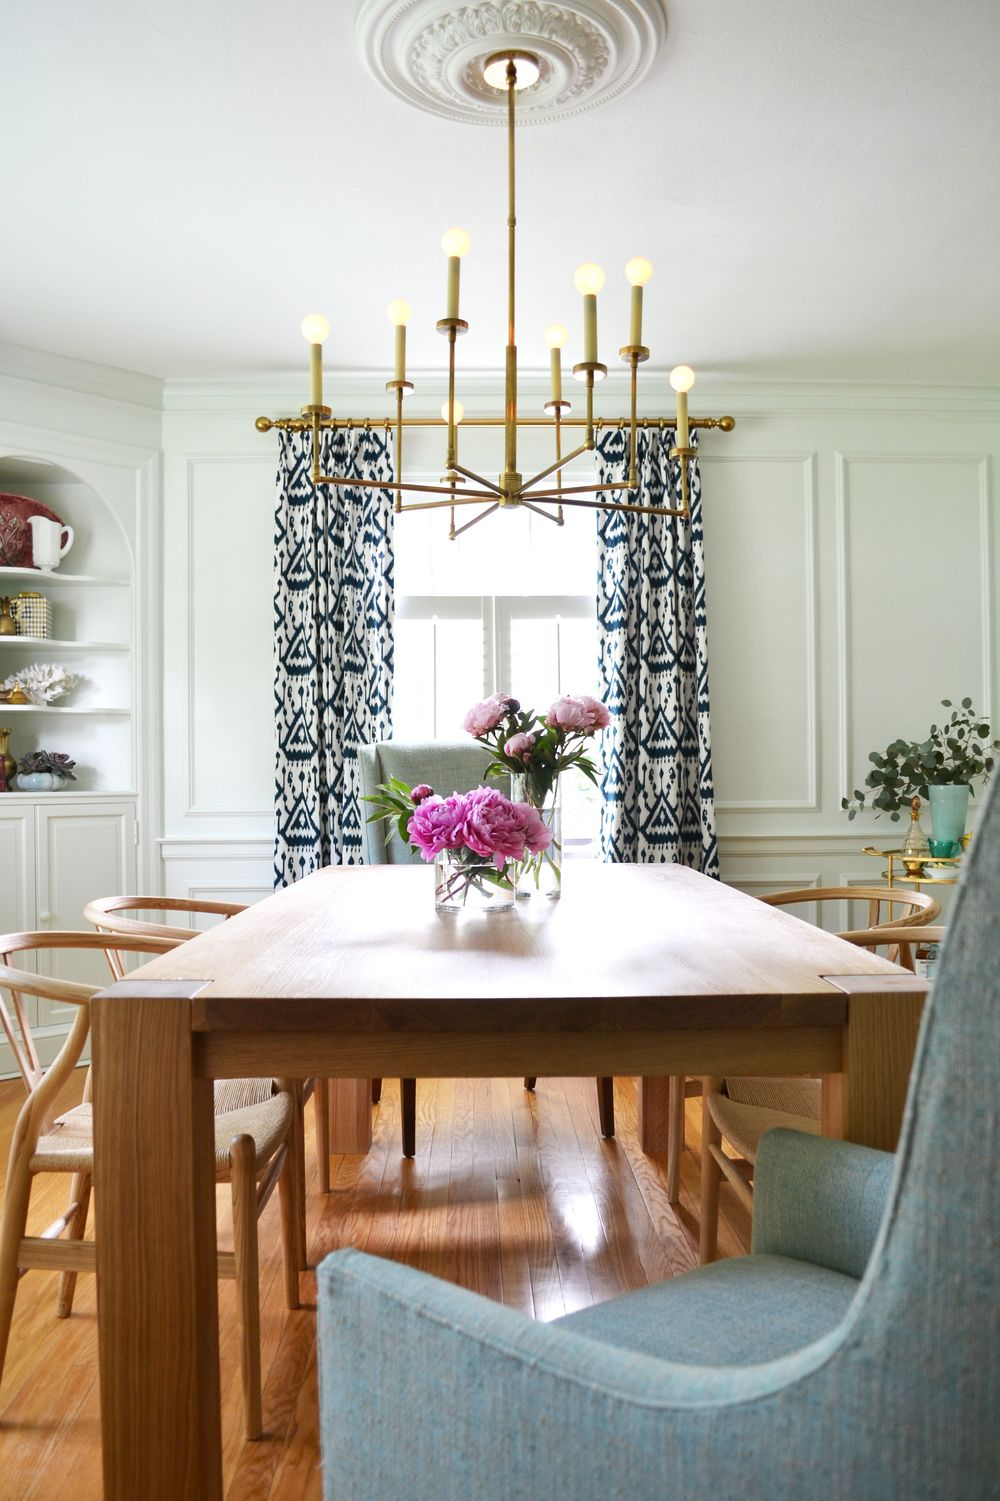 Beau Before + After: Leahu0027s Dining Room